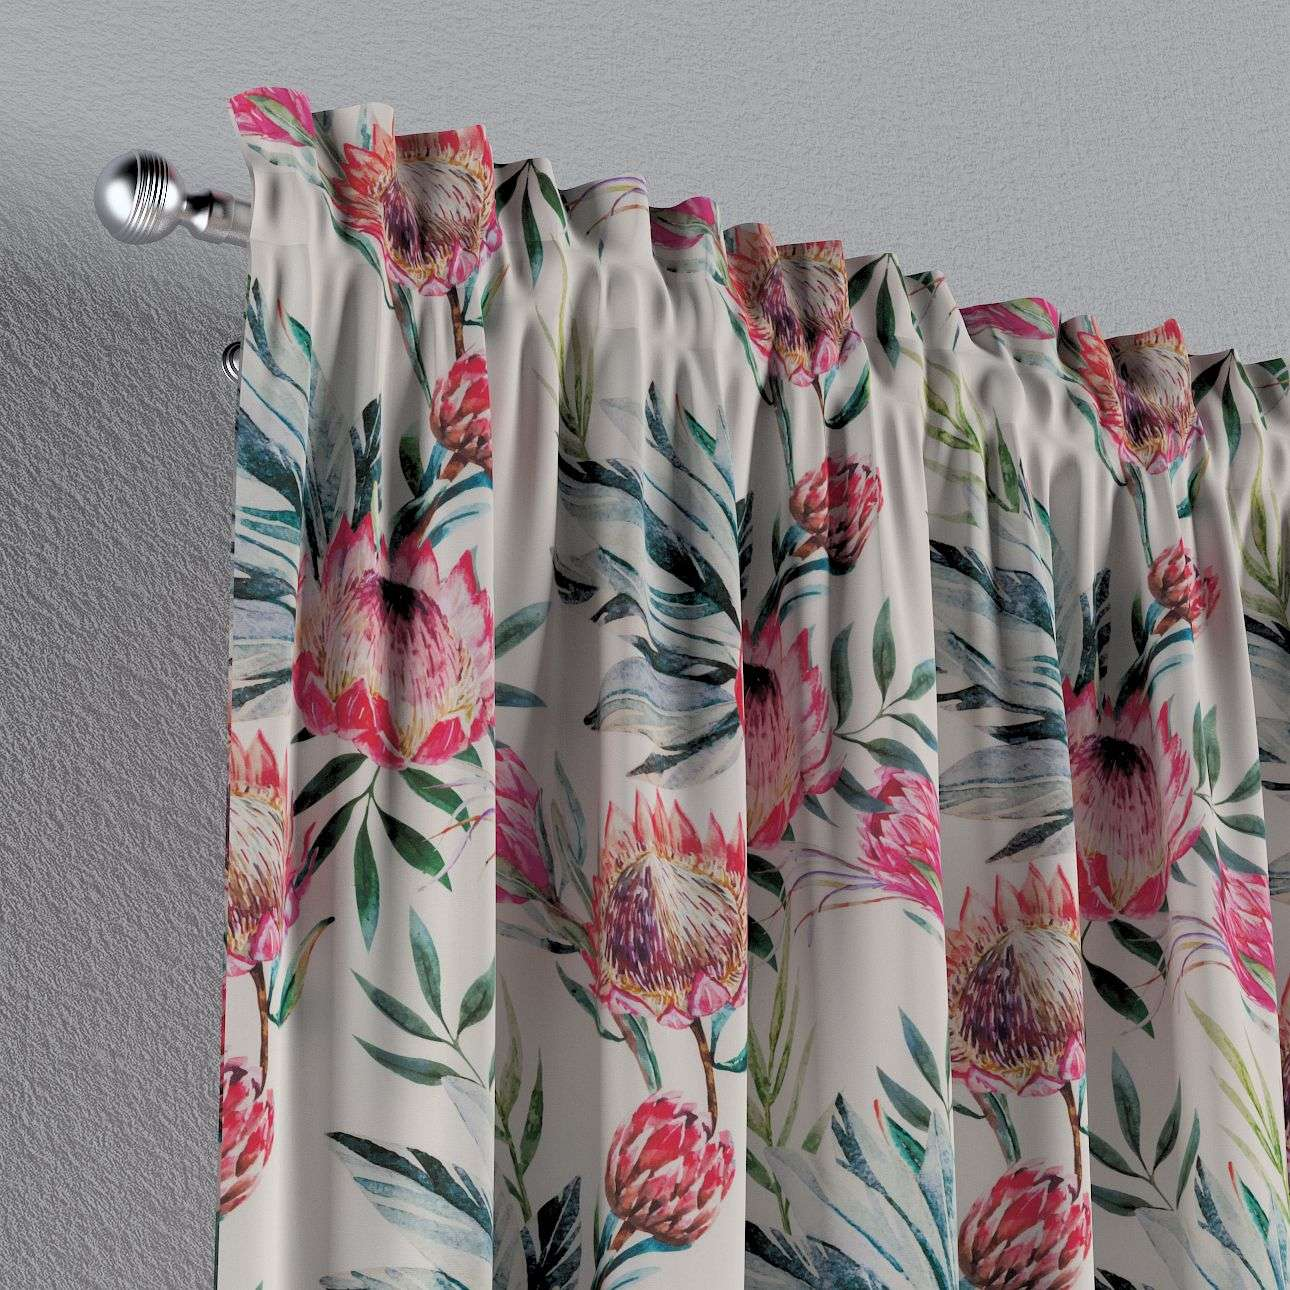 Slot and frill curtains 130 x 260 cm (51 x 102 inch) in collection New Art, fabric: 141-59